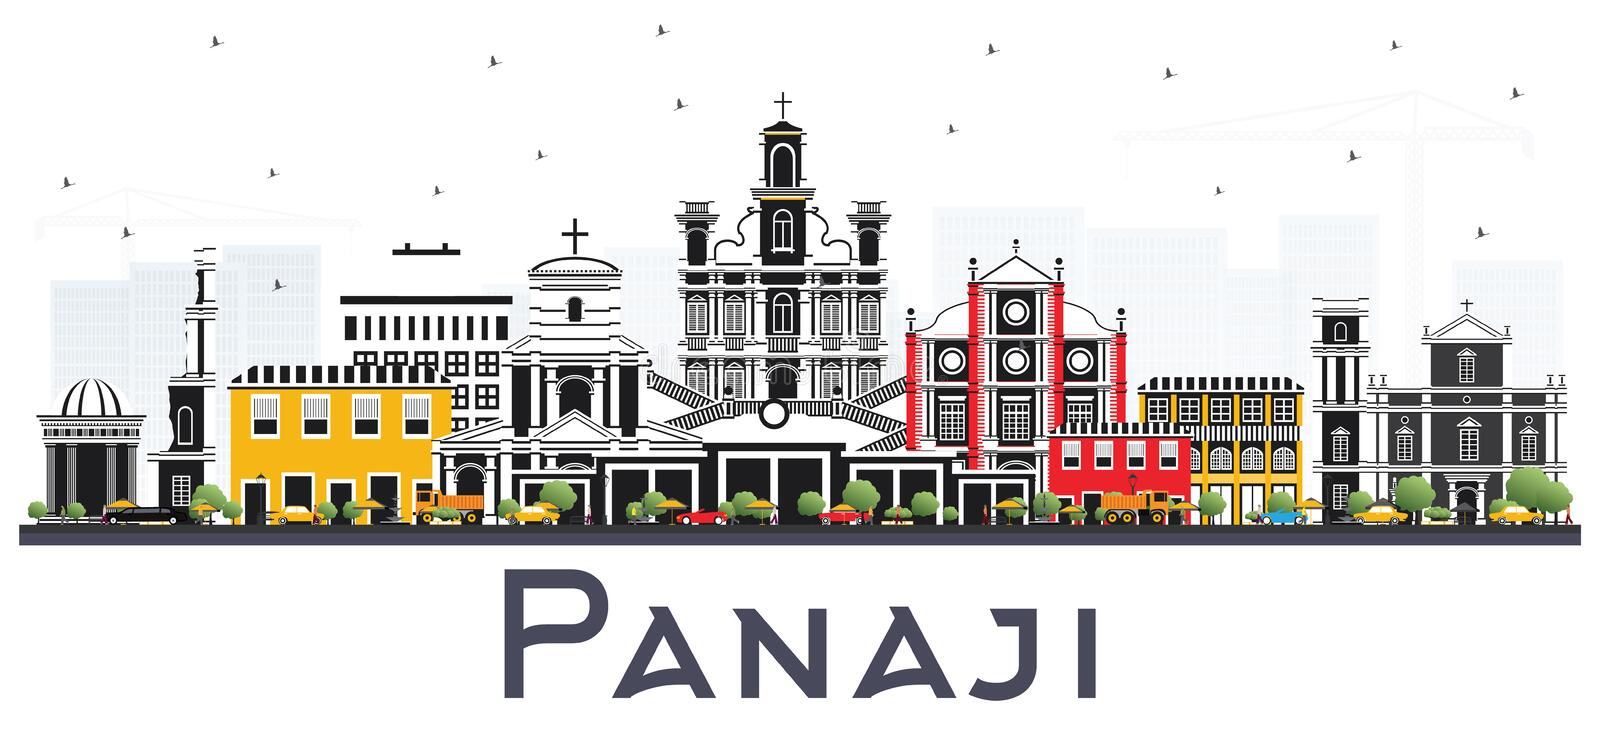 Panaji India City Skyline with Color Buildings Isolated on White. Vector Illustration. Business Travel and Tourism Concept with Historic Architecture. Panaji vector illustration